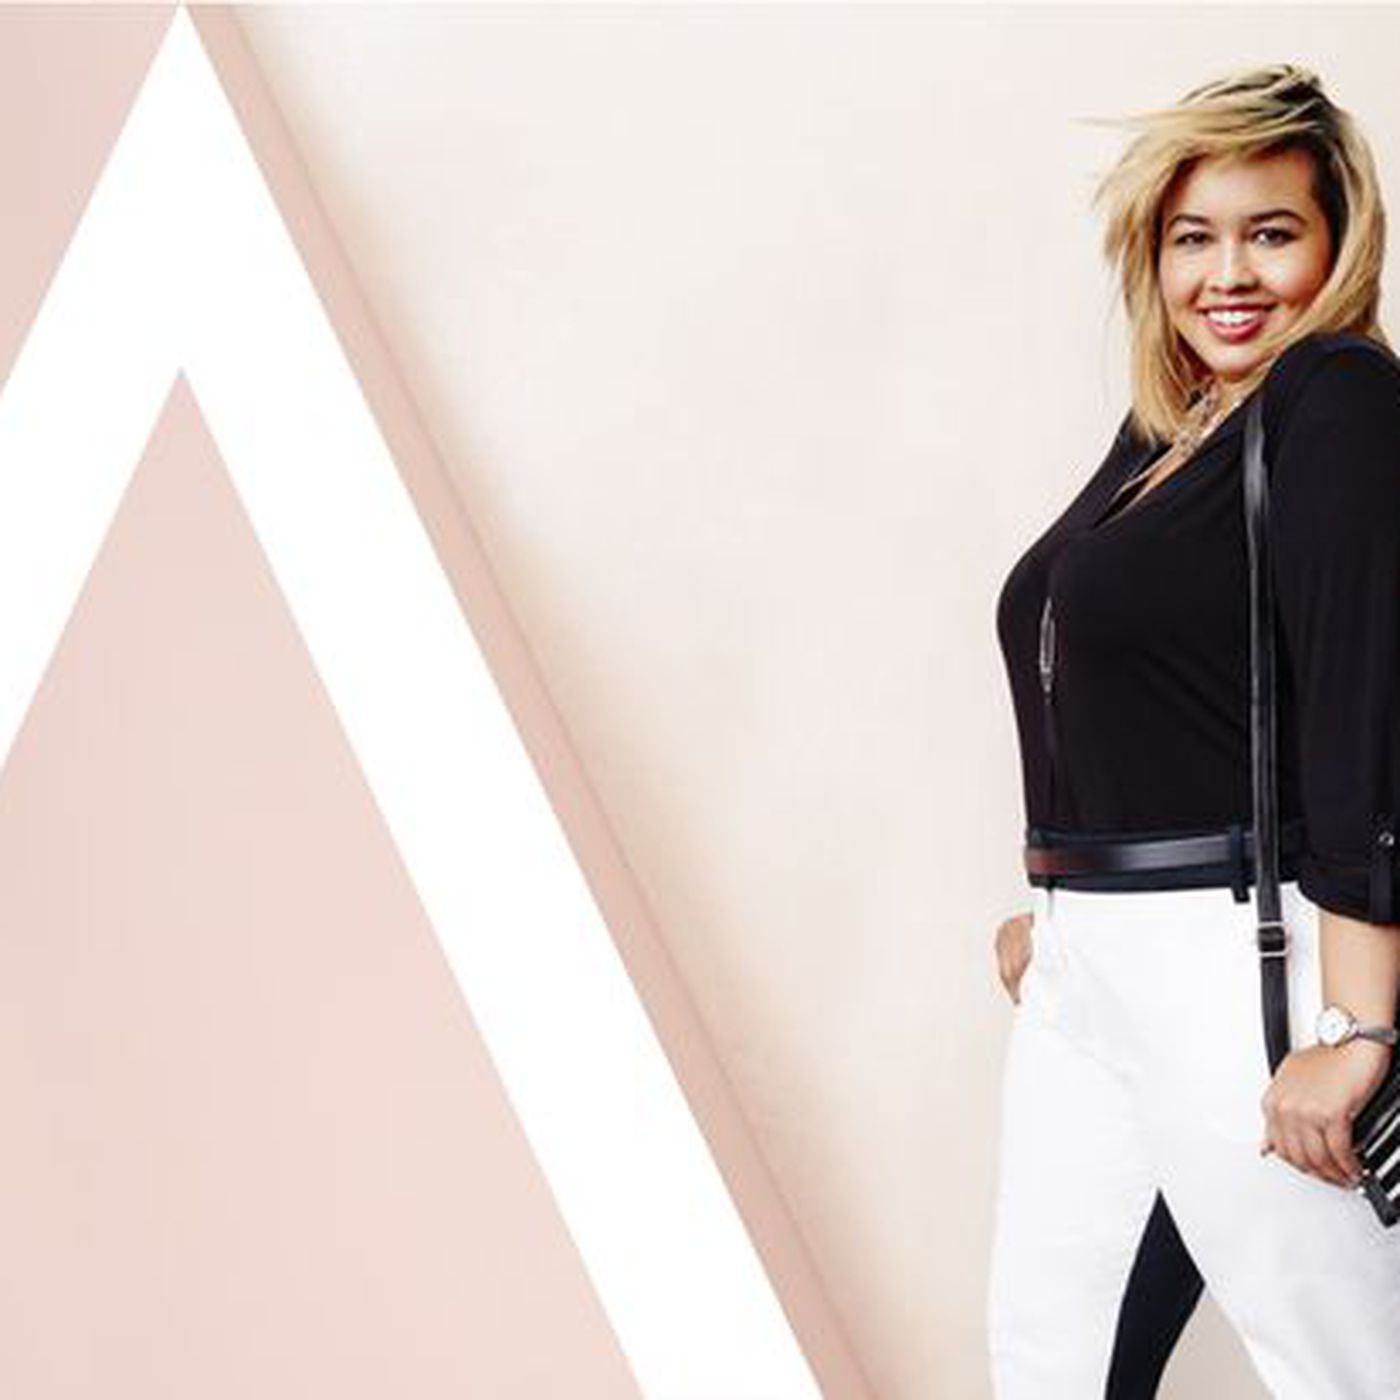 95a52e0d3d1a See Every Piece From Ava & Viv, Target's New Plus Line - Racked